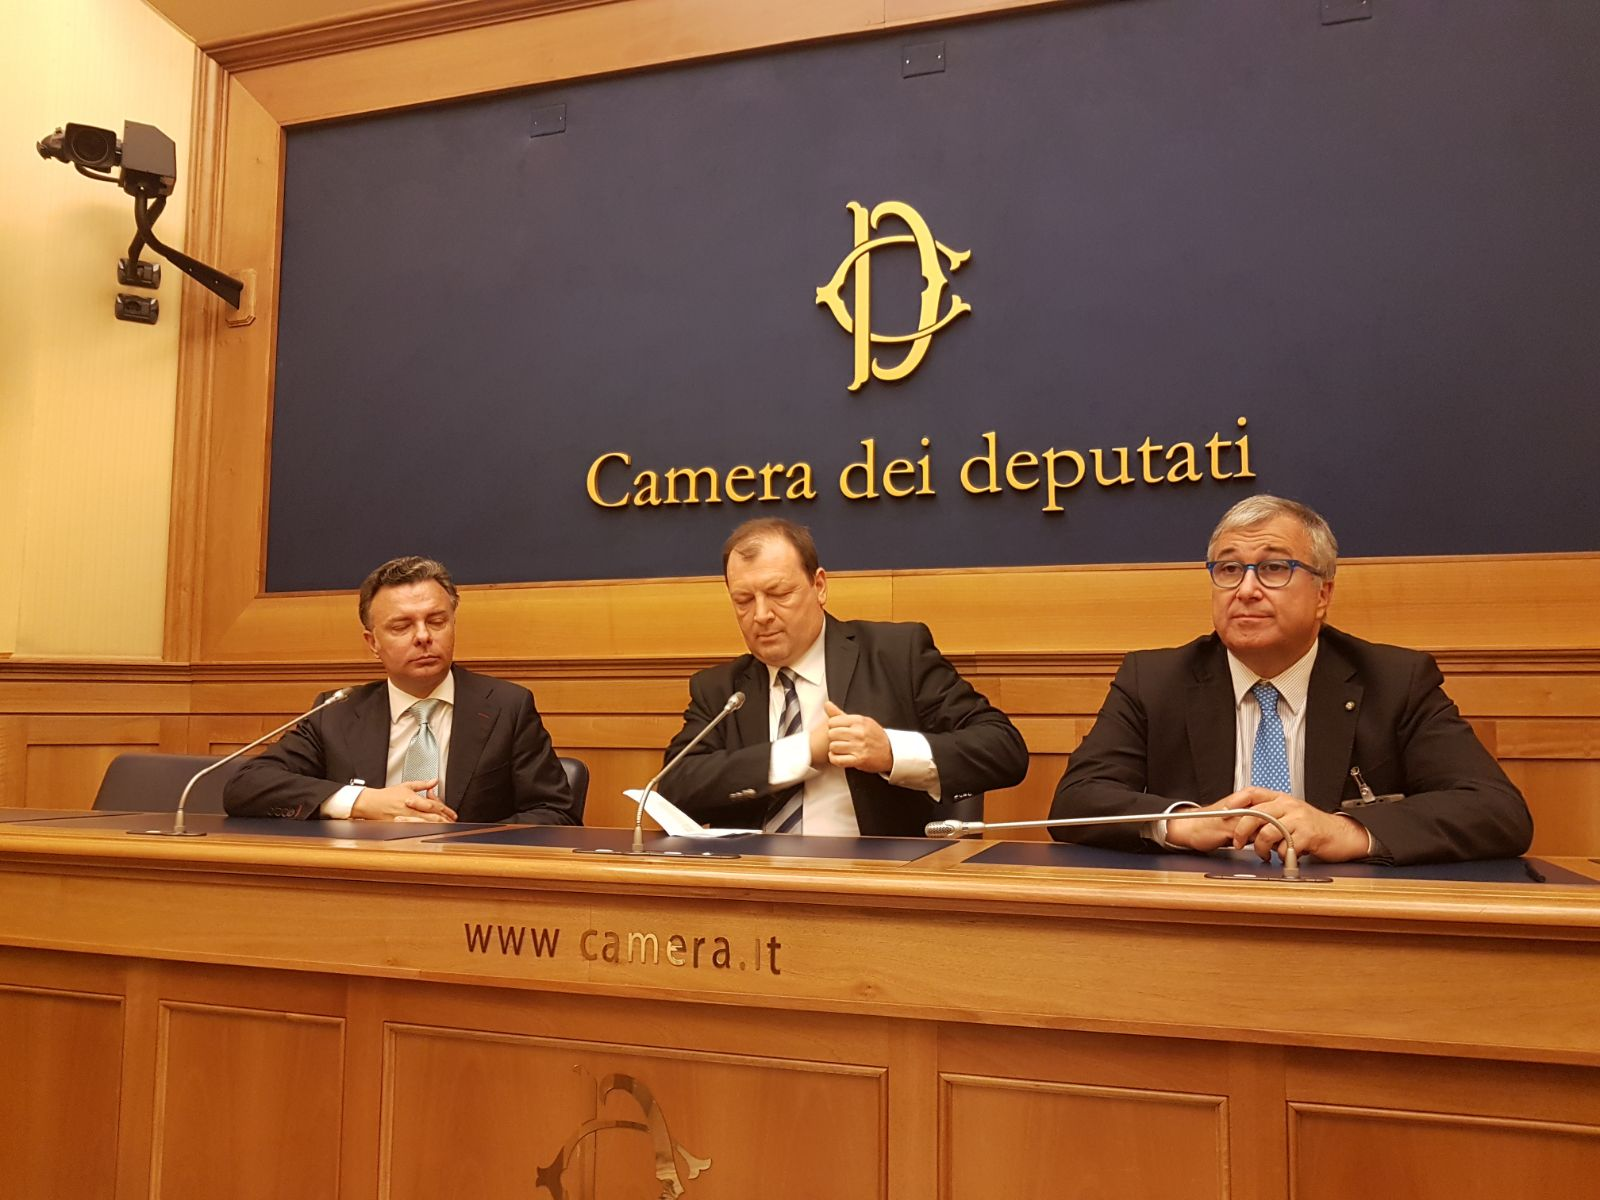 Video integrale bepi pezzulli in conferenza stampa for Rassegna stampa camera deputati